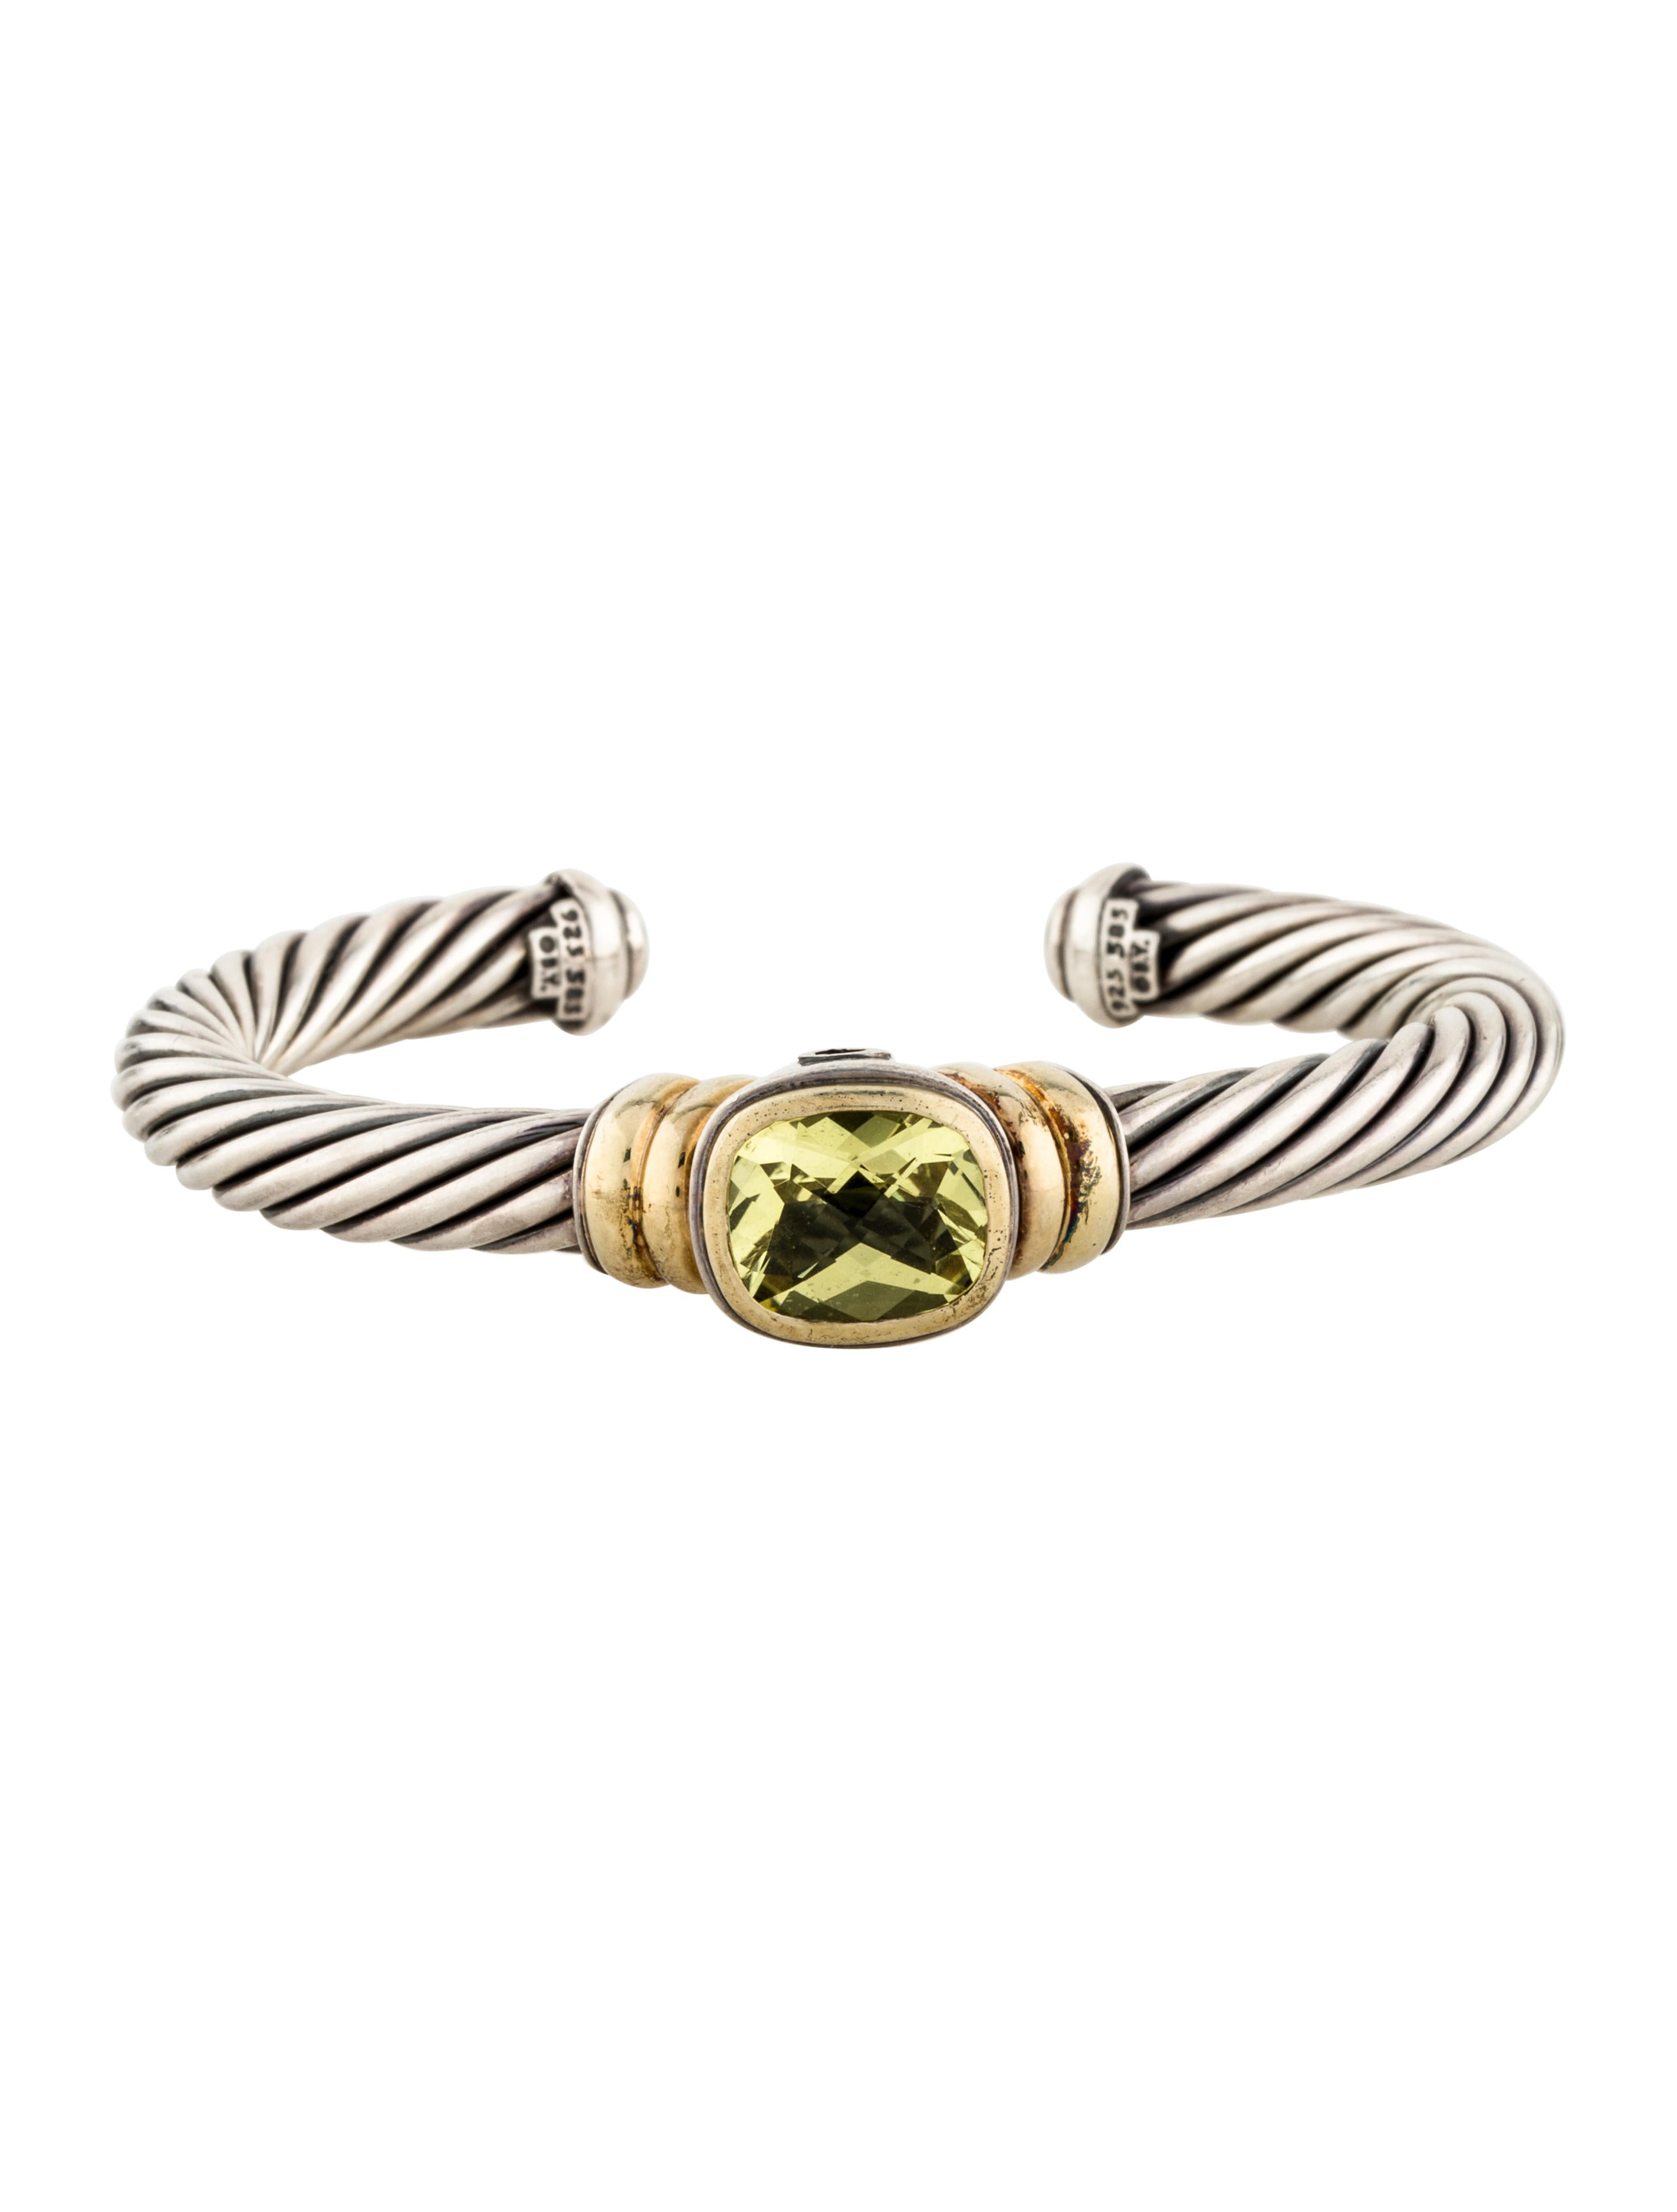 David yurman peridot cable cuff bracelet bracelets for David yurman inspired bracelet cable